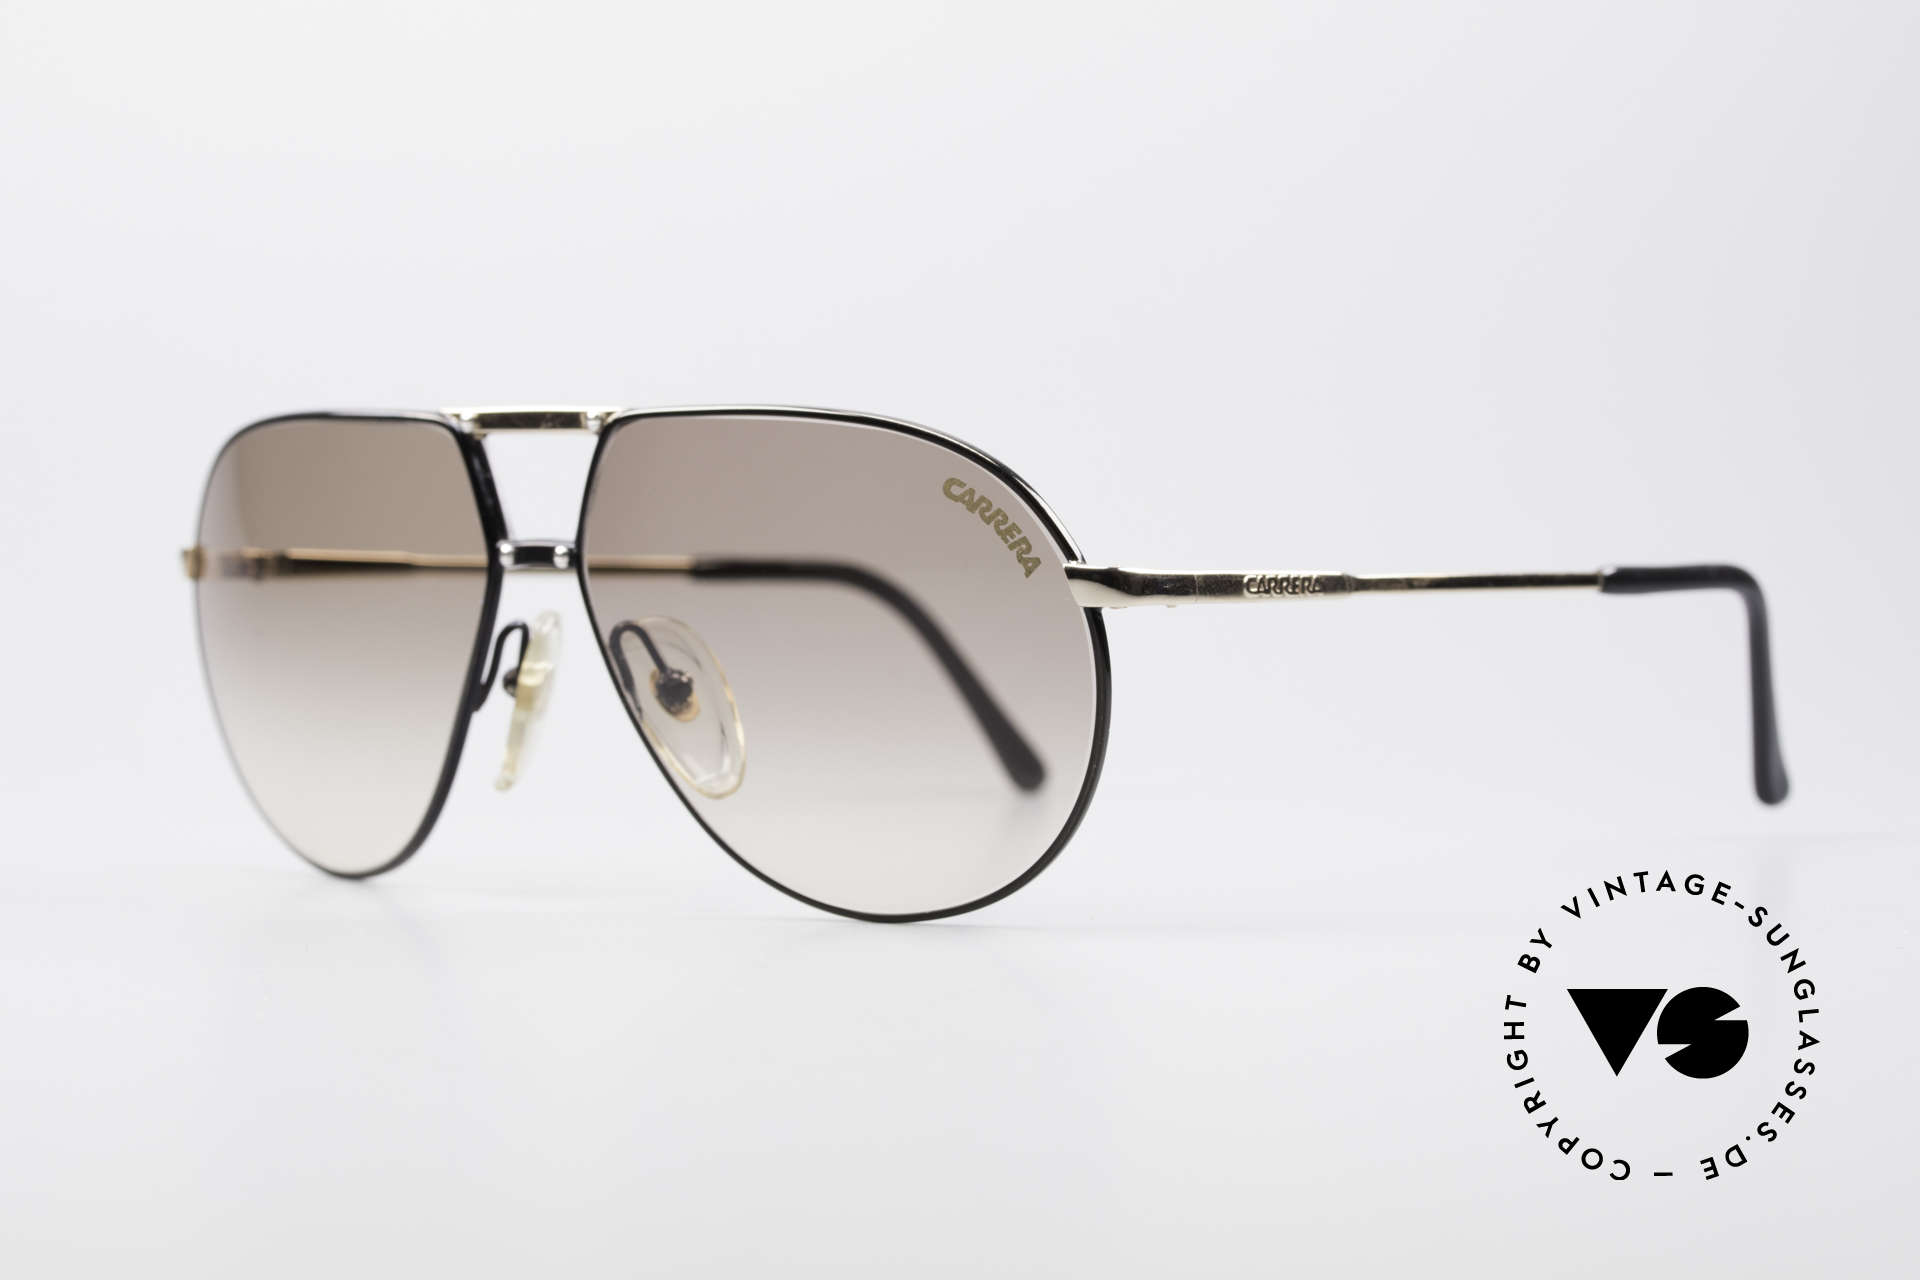 Carrera 5326 - S 80's Men's Sunglasses, premium craftsmanship and SMALL SIZE 58-12, 130, Made for Men and Women